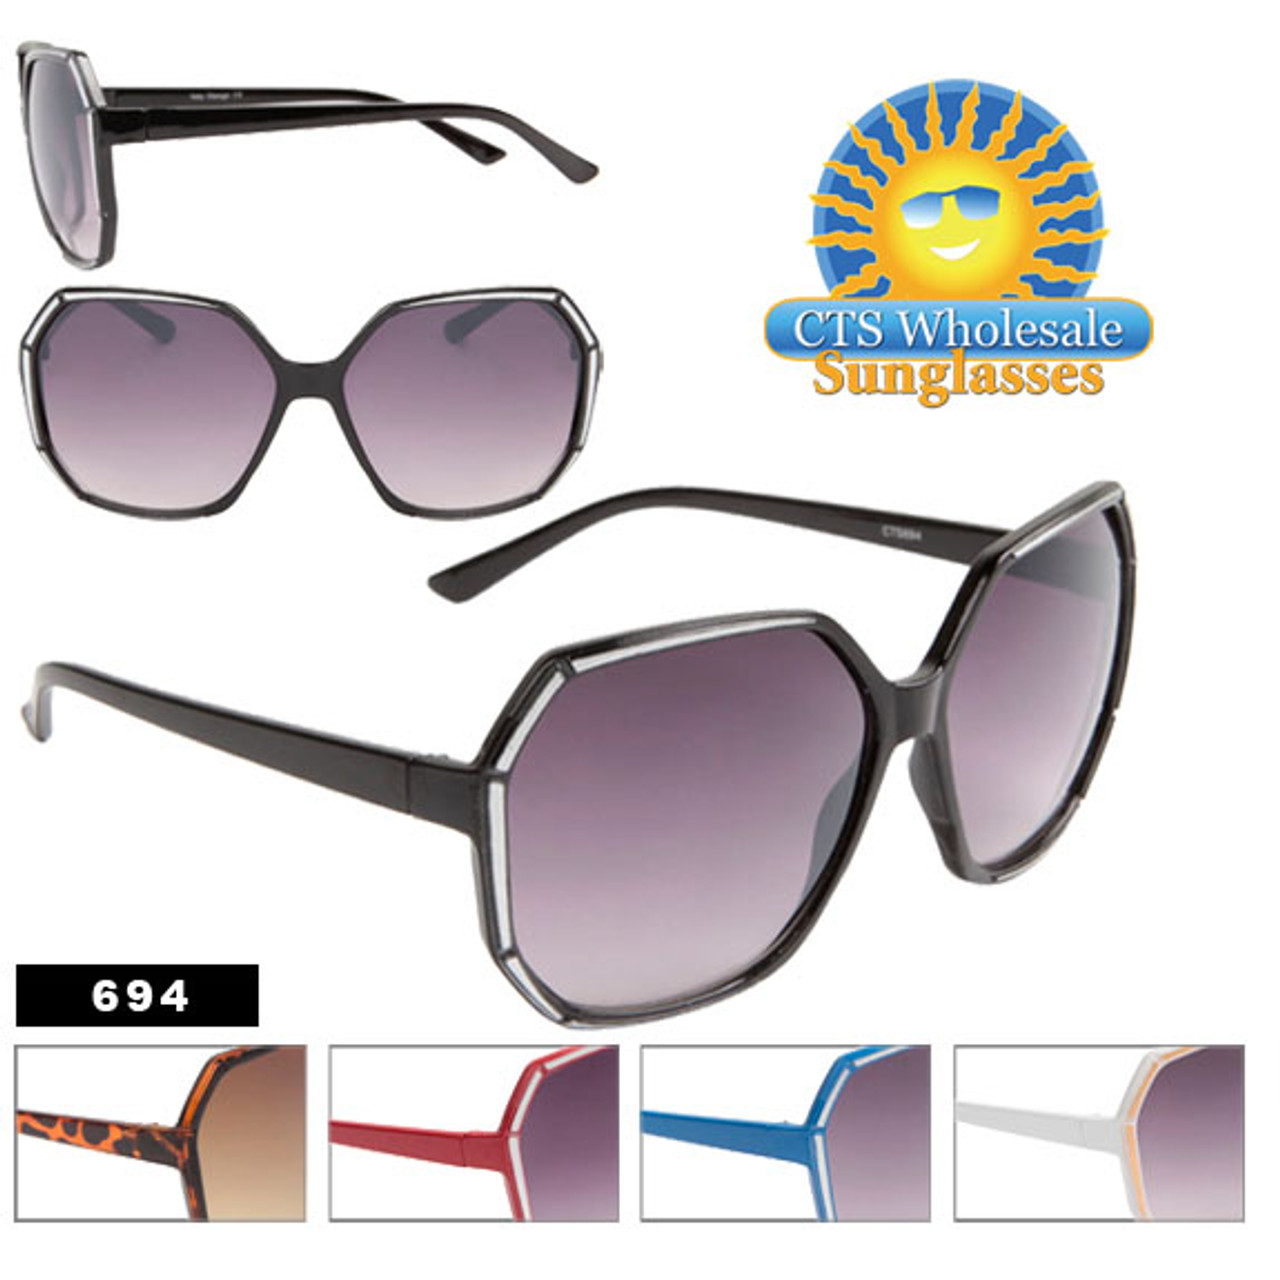 Square Retro Sunglasses!